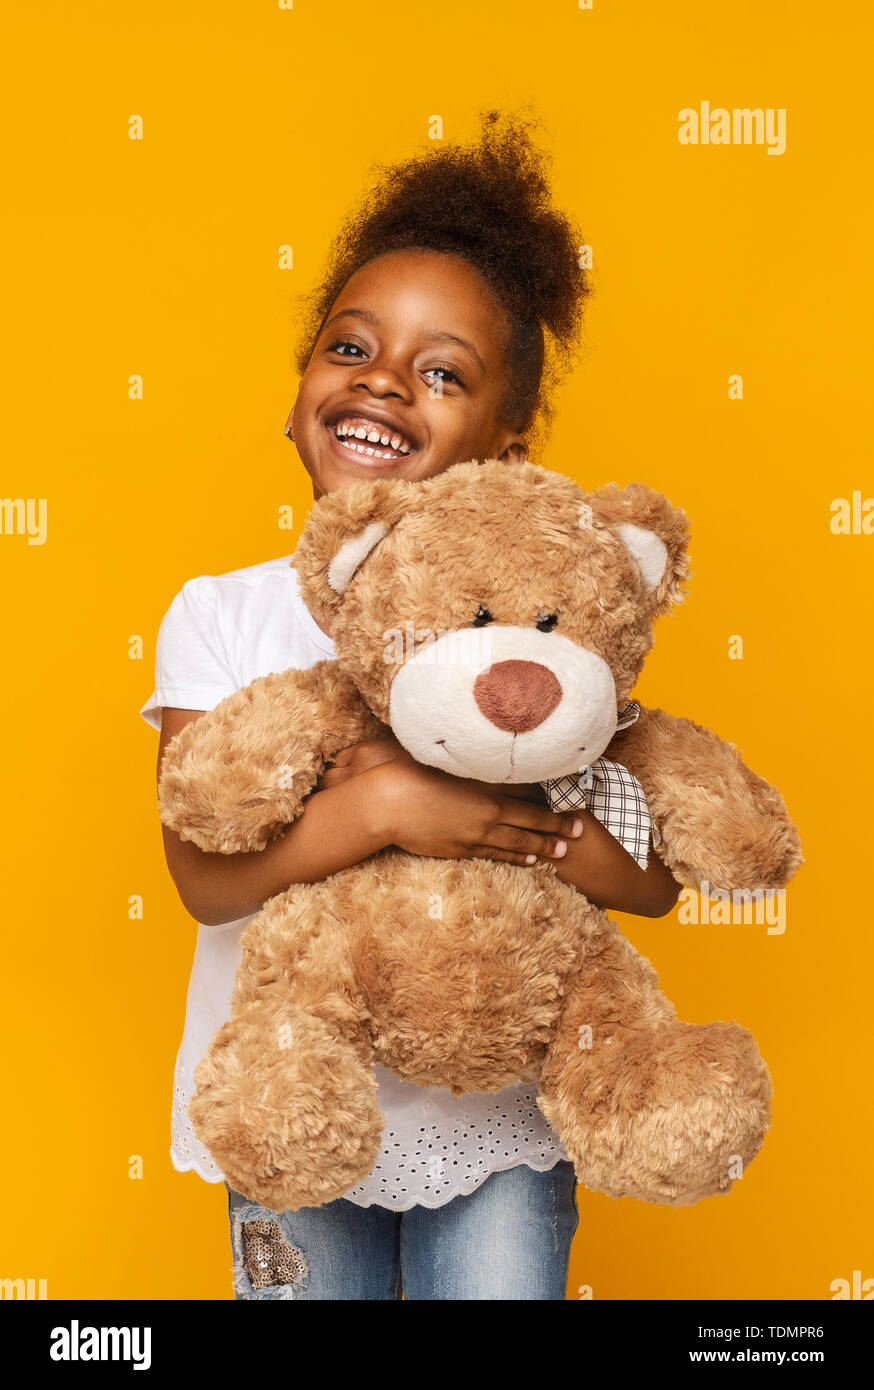 Cute african american child hugging teddy bear and smiling - Stock Image